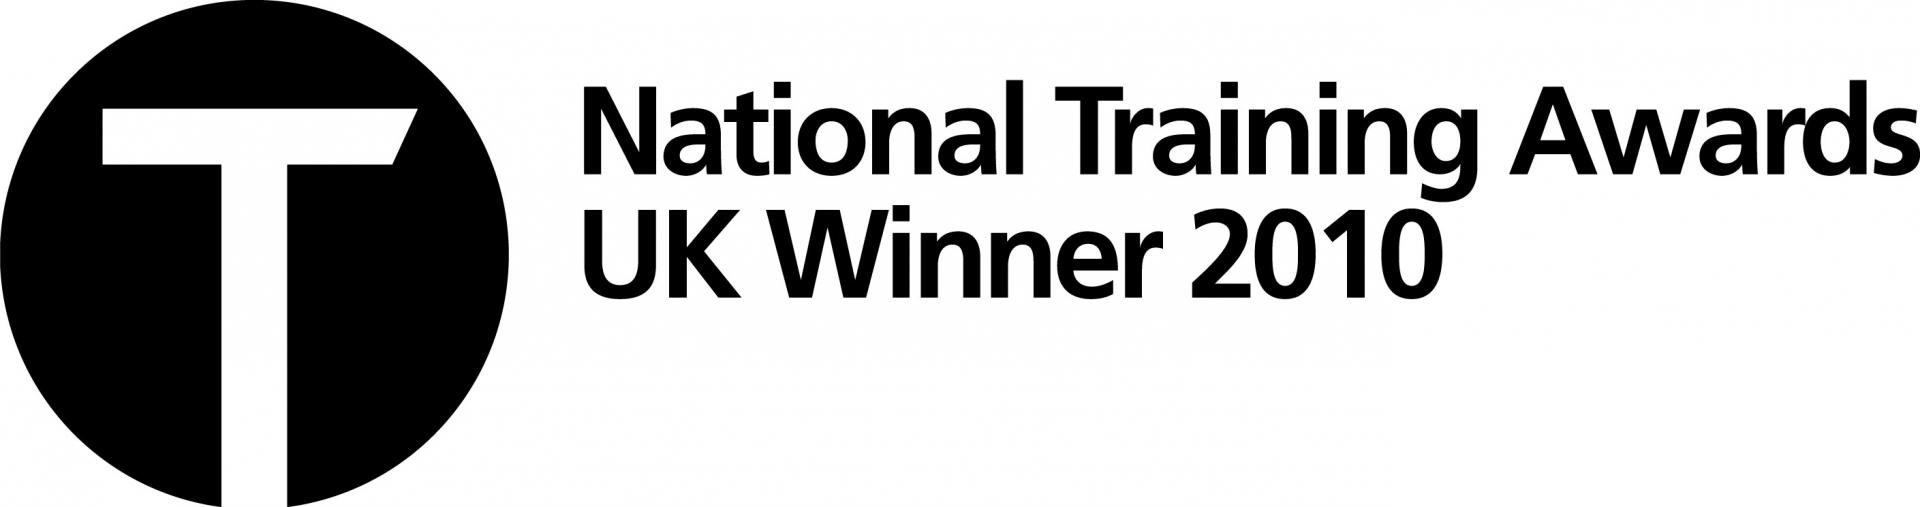 National Training Awards Image